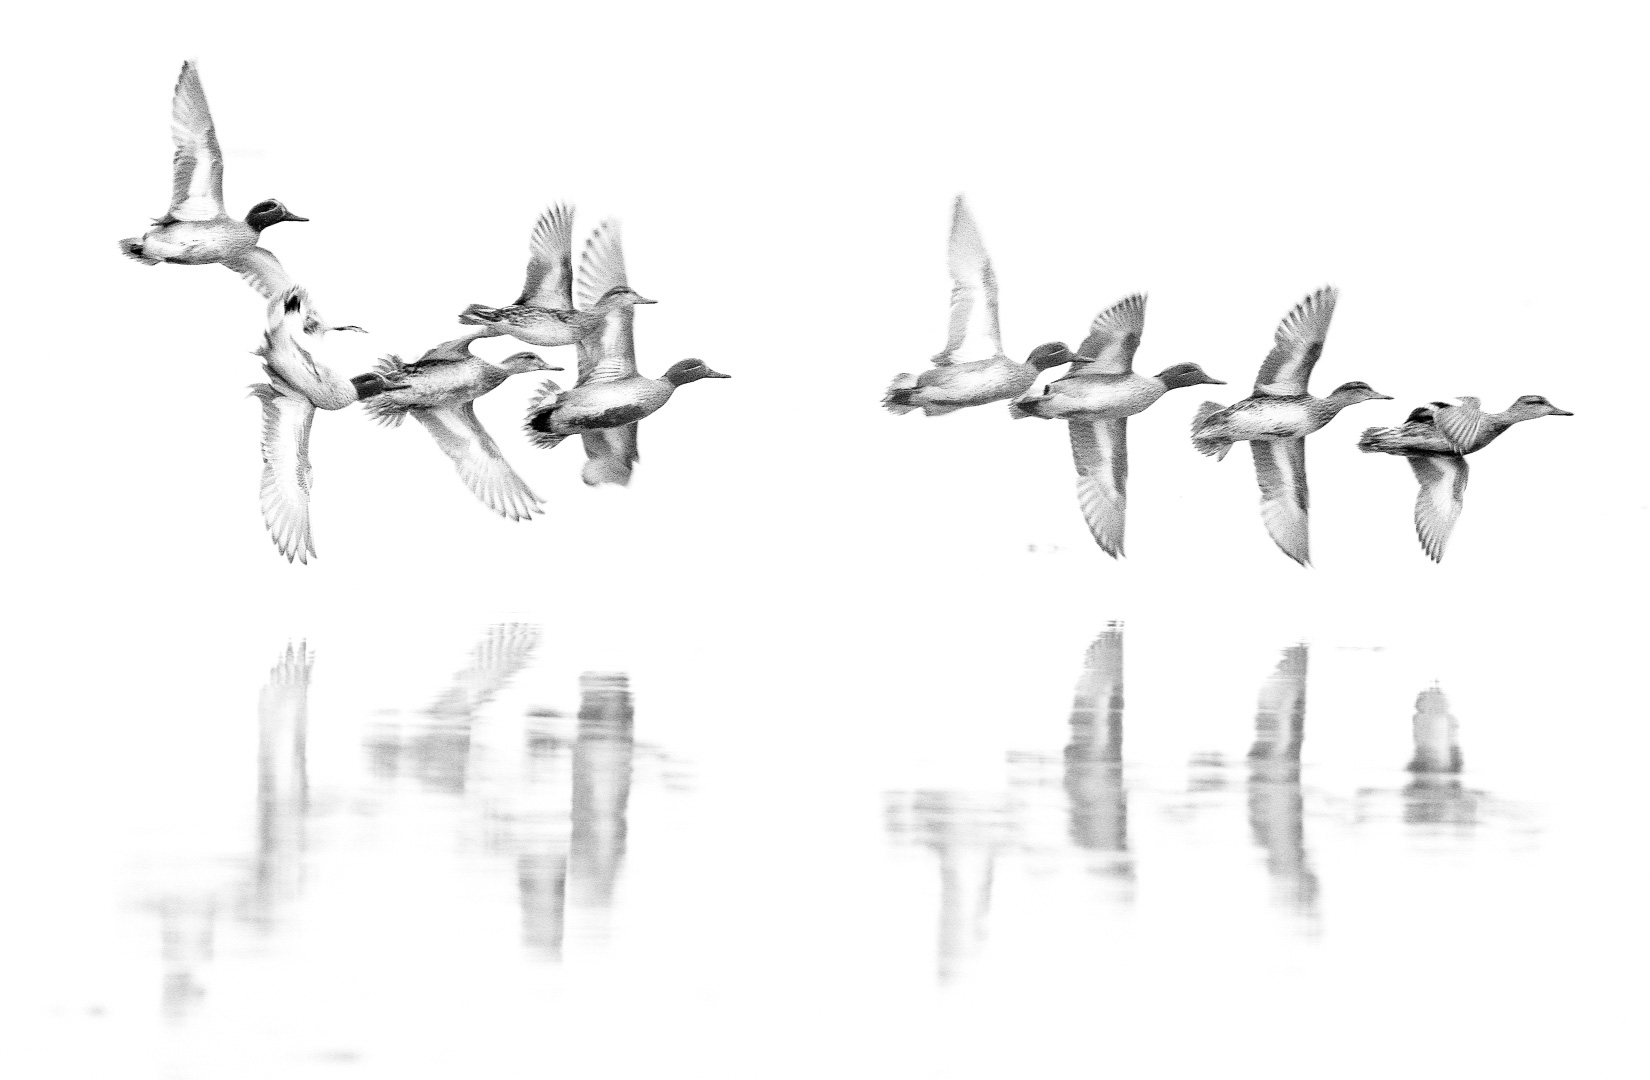 4262246446012251141-MP2_The-falling-duck